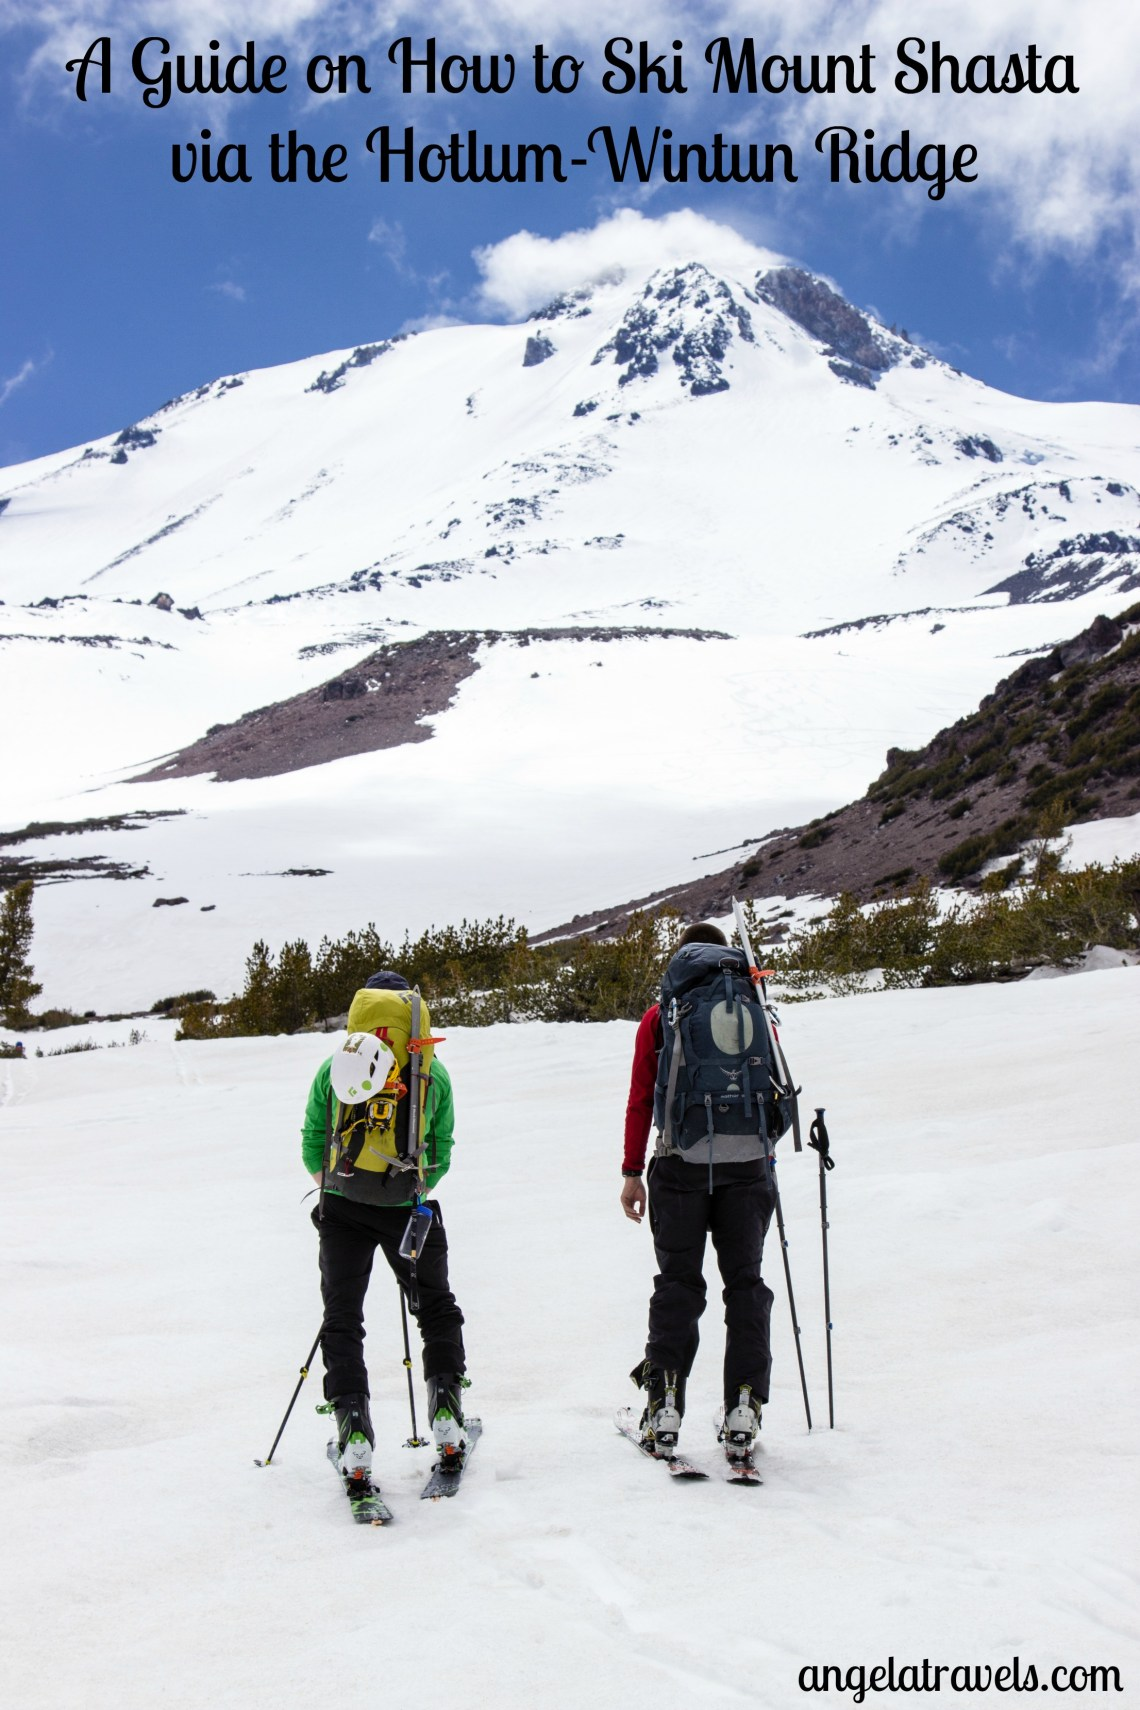 Everything you need to know to climb and ski Mt. Shasta's Hotlum-Wintun Ridge.